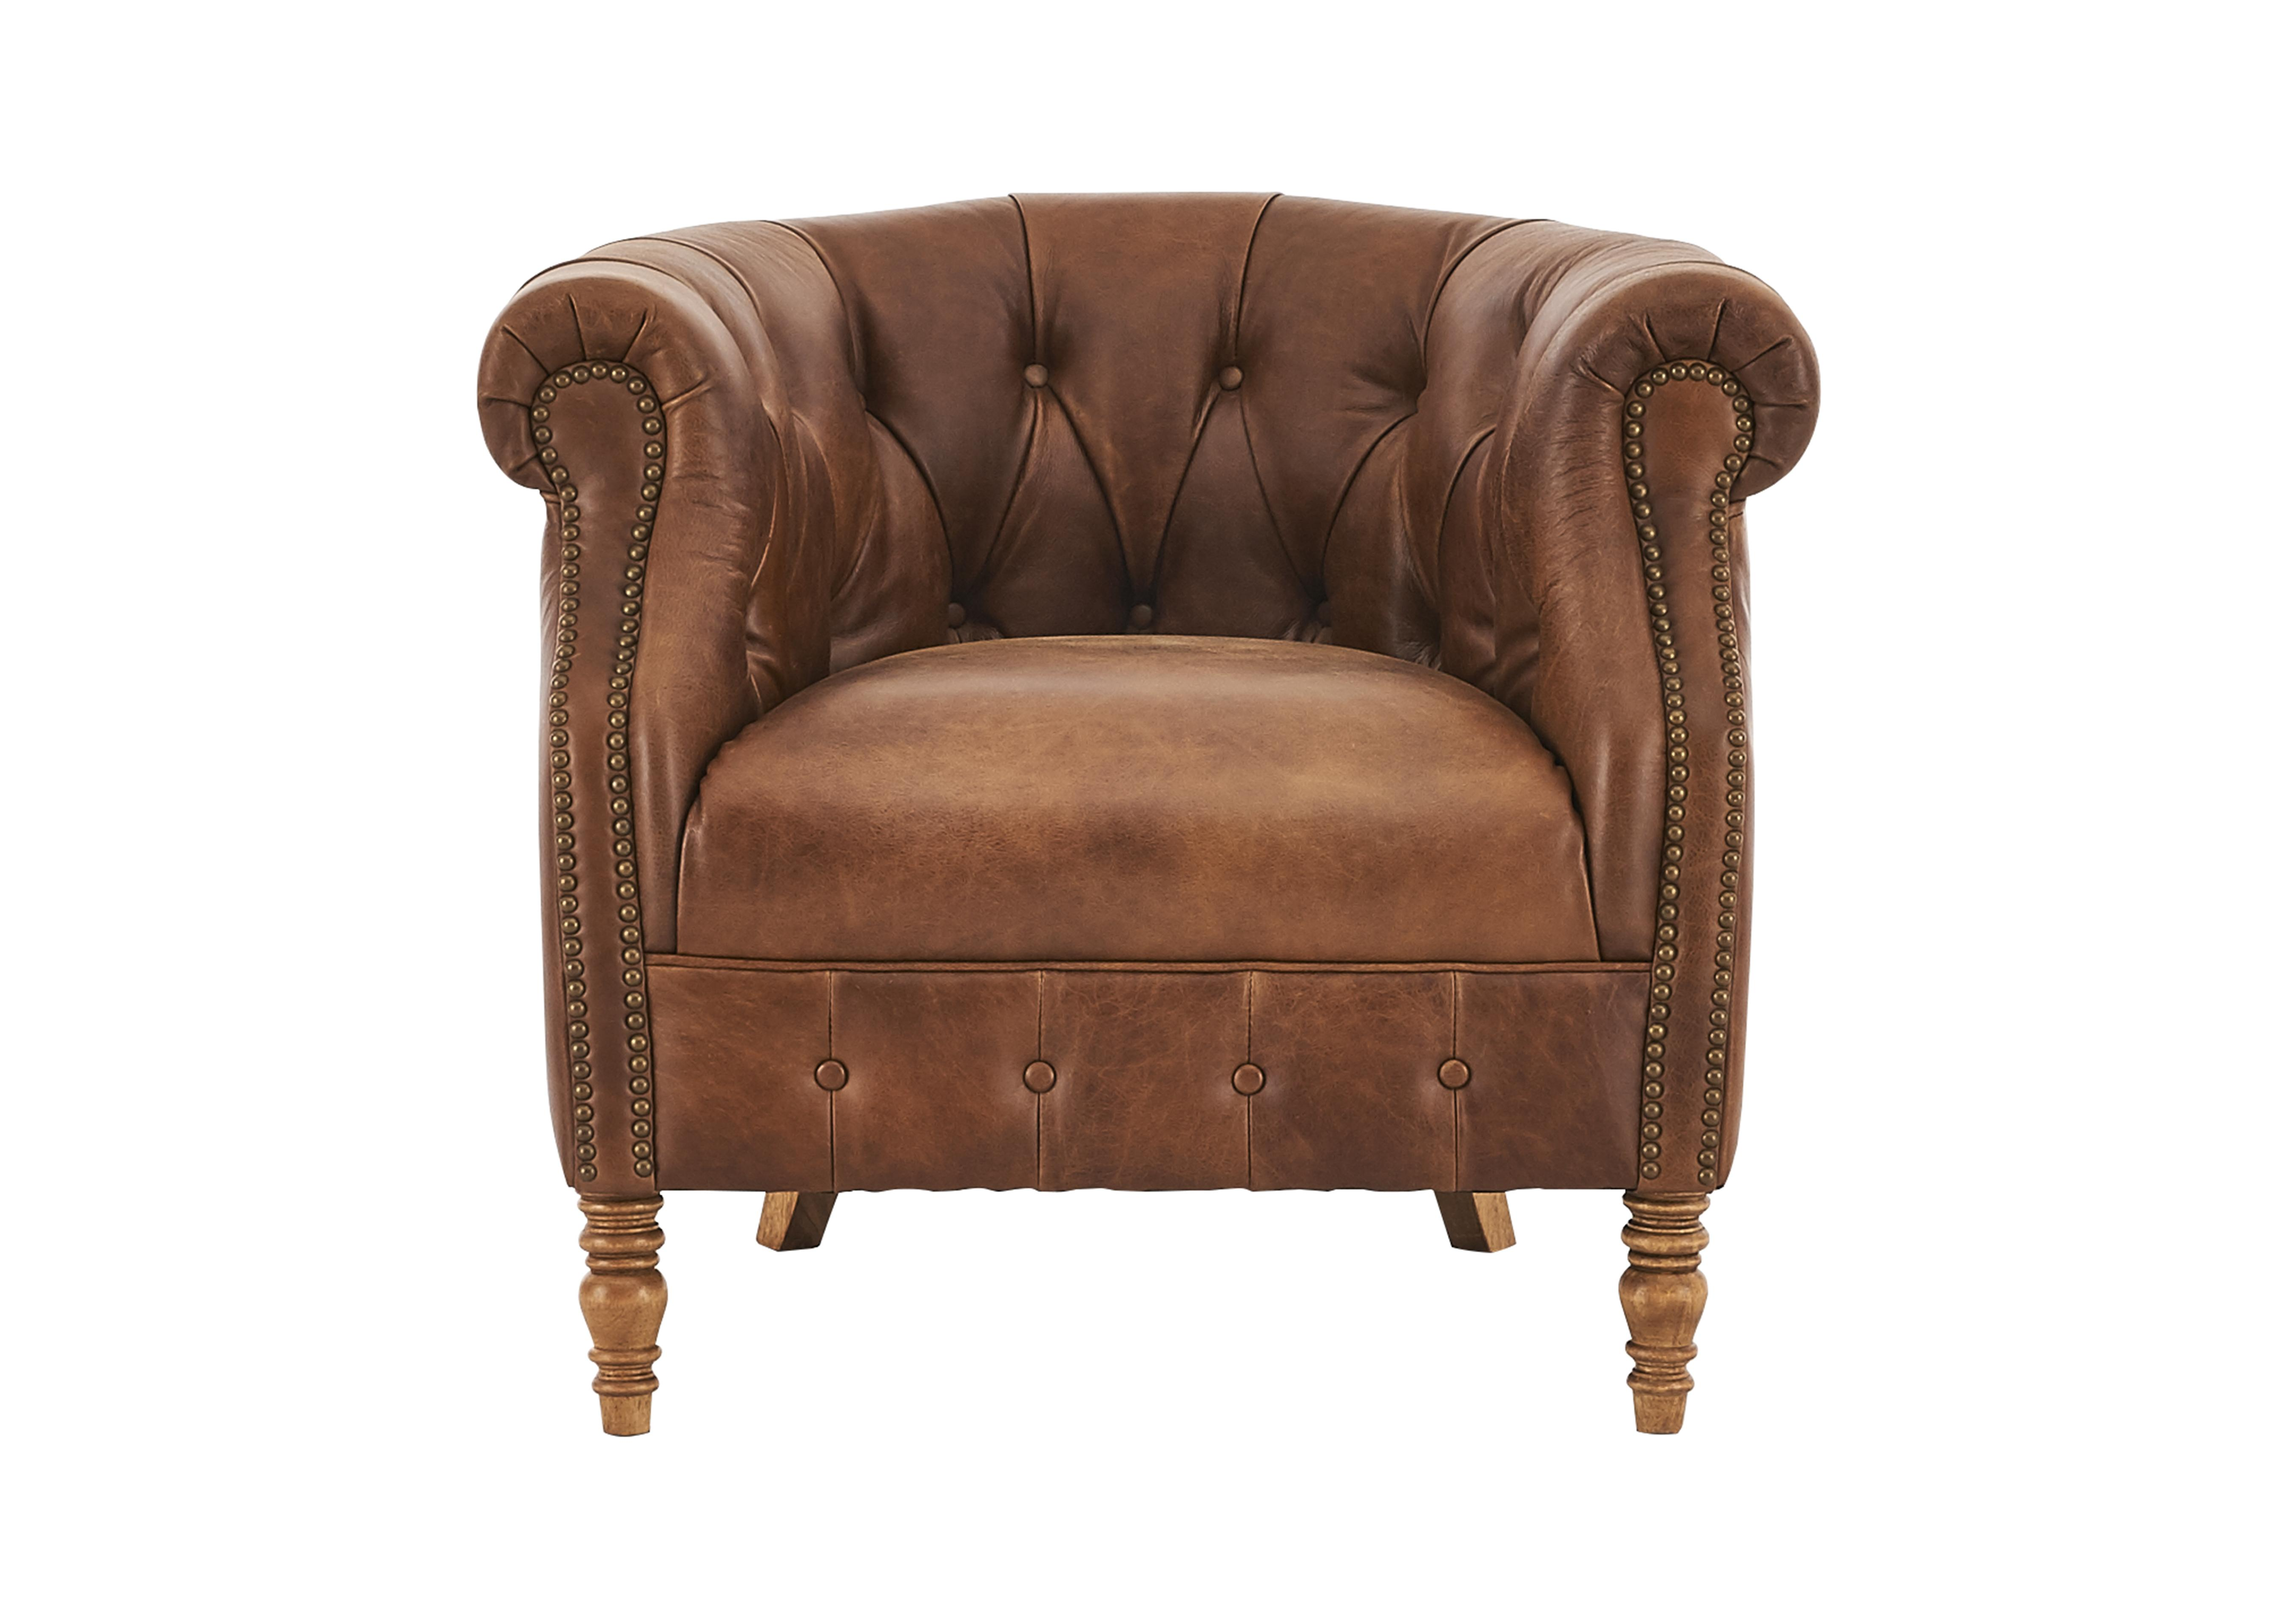 Ordinaire Alexander And James New England Dukes Leather Buttoned Armchair